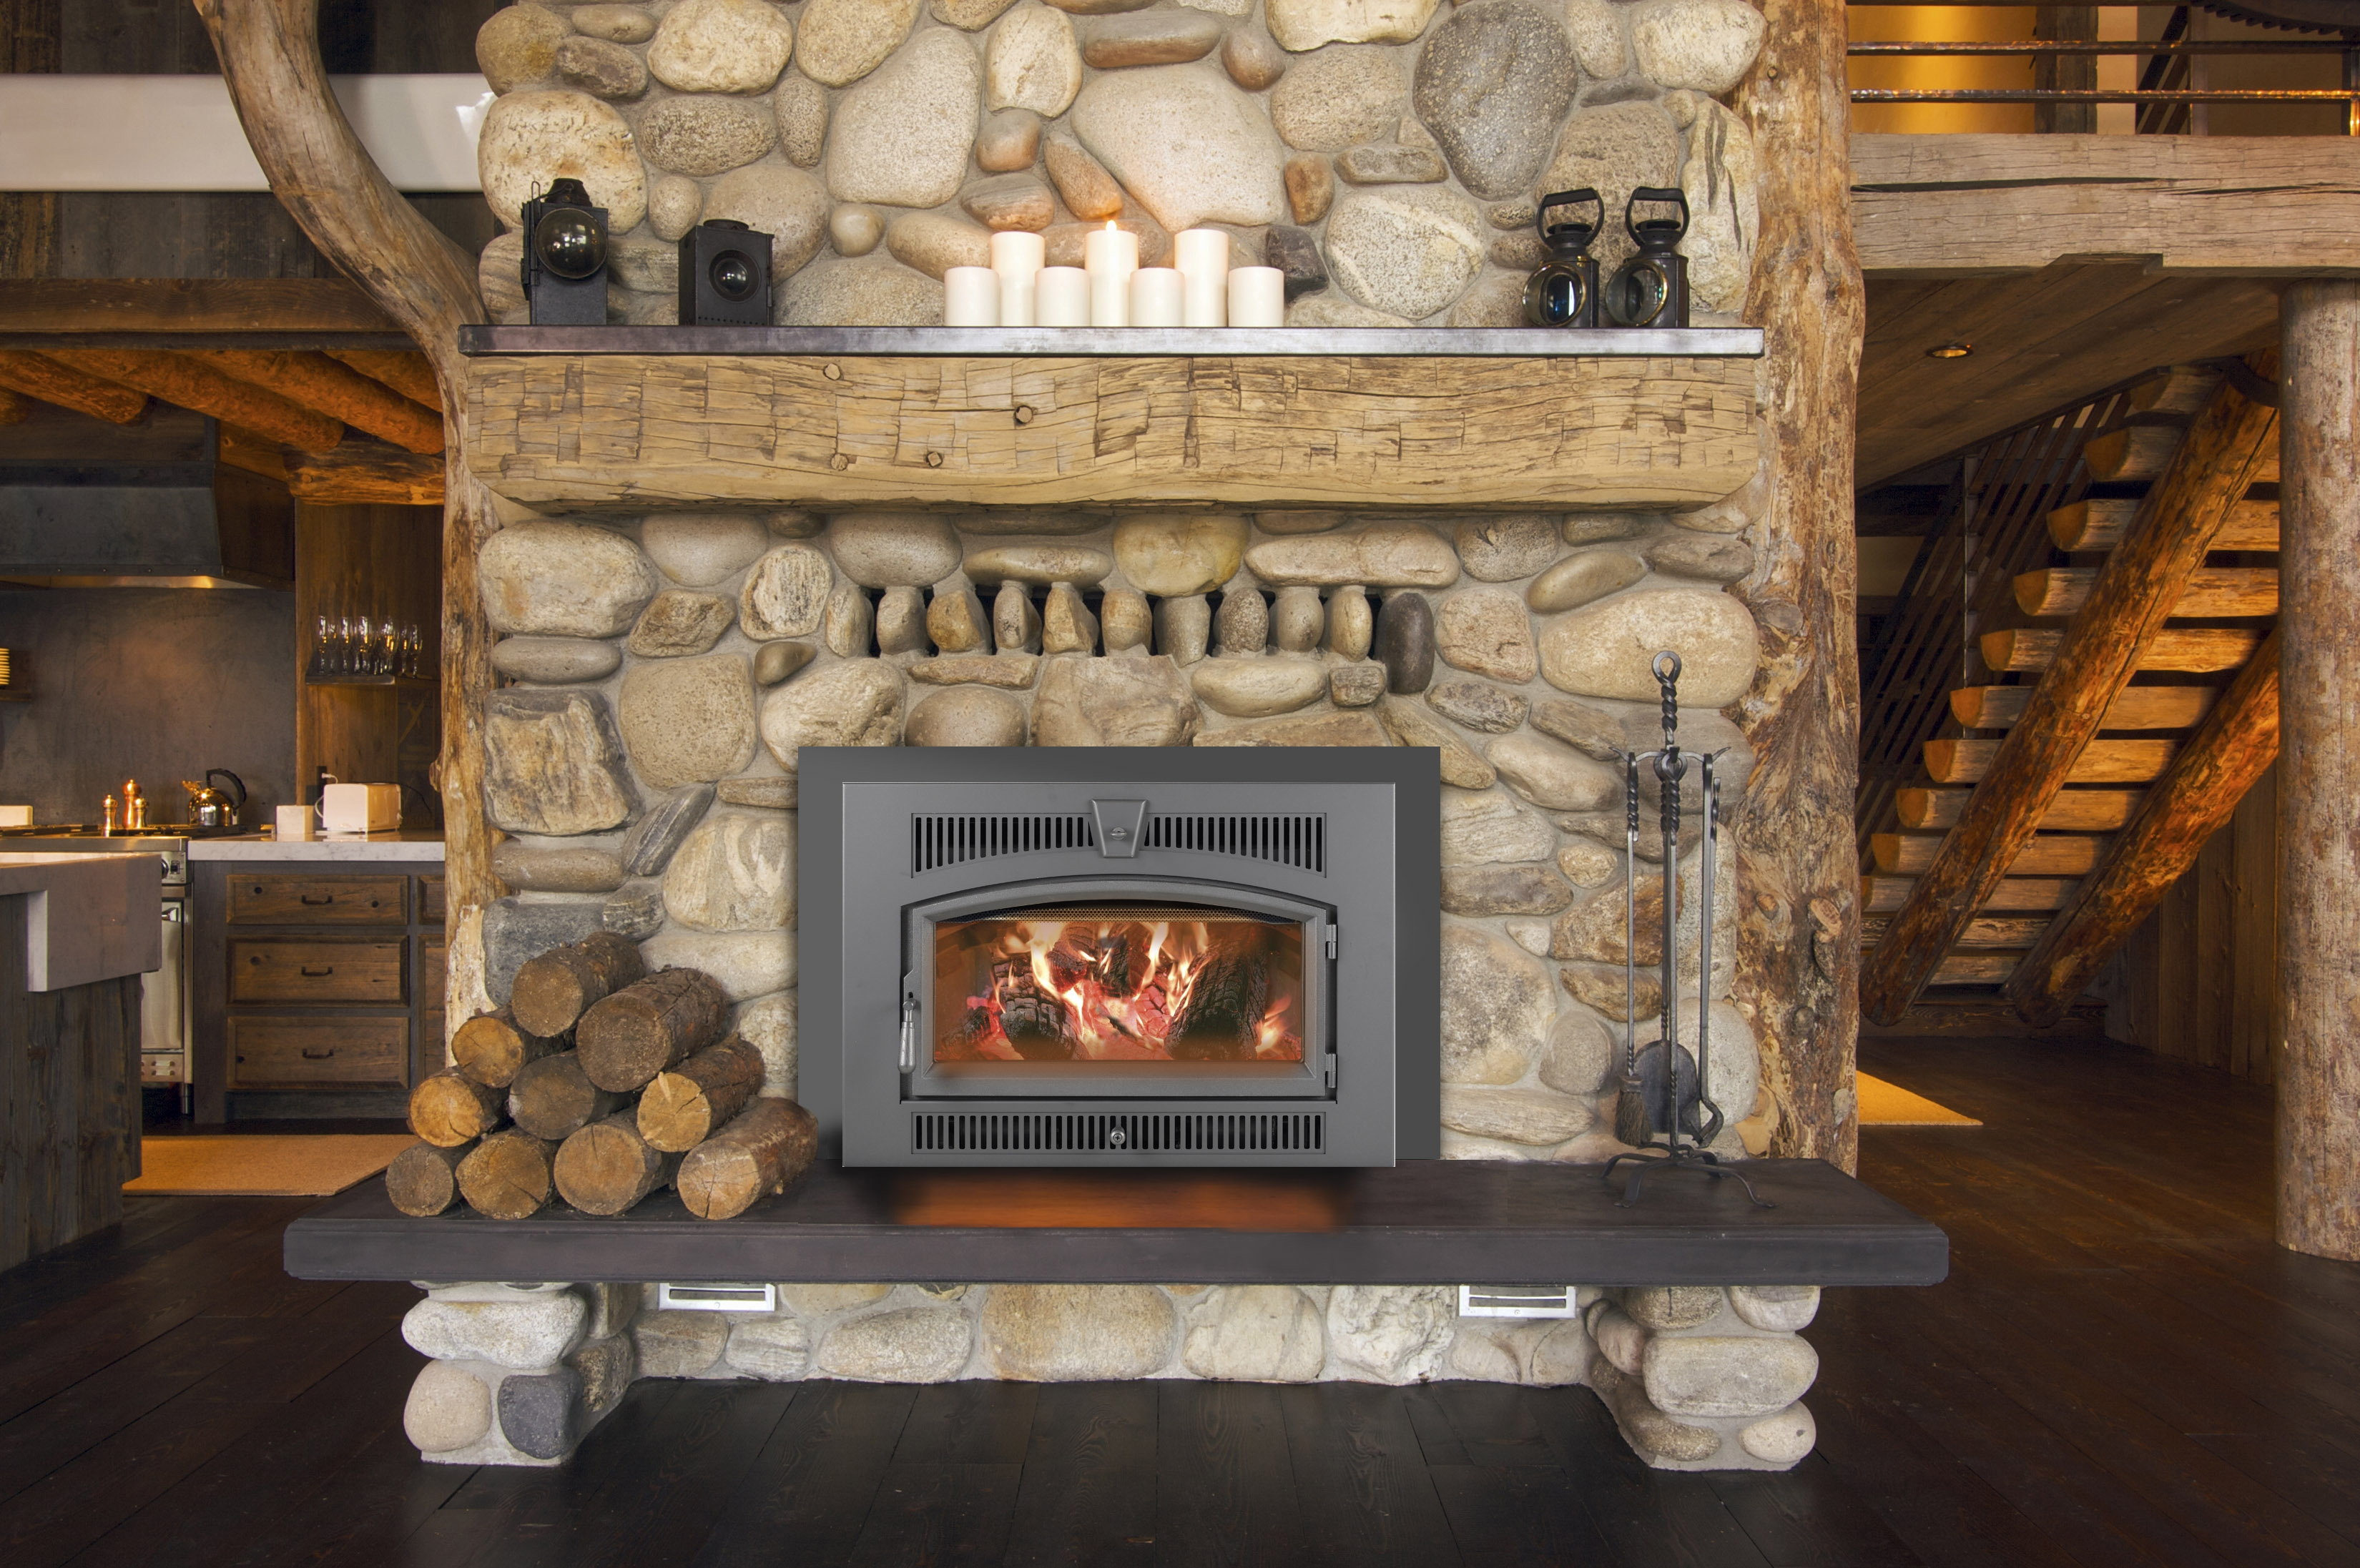 a high fireplaces many options medium plus line fireplace efficiency lopi there the gas choose surround not radiant burning inserts media traditional flush wood and are features vancouver from log few blog to